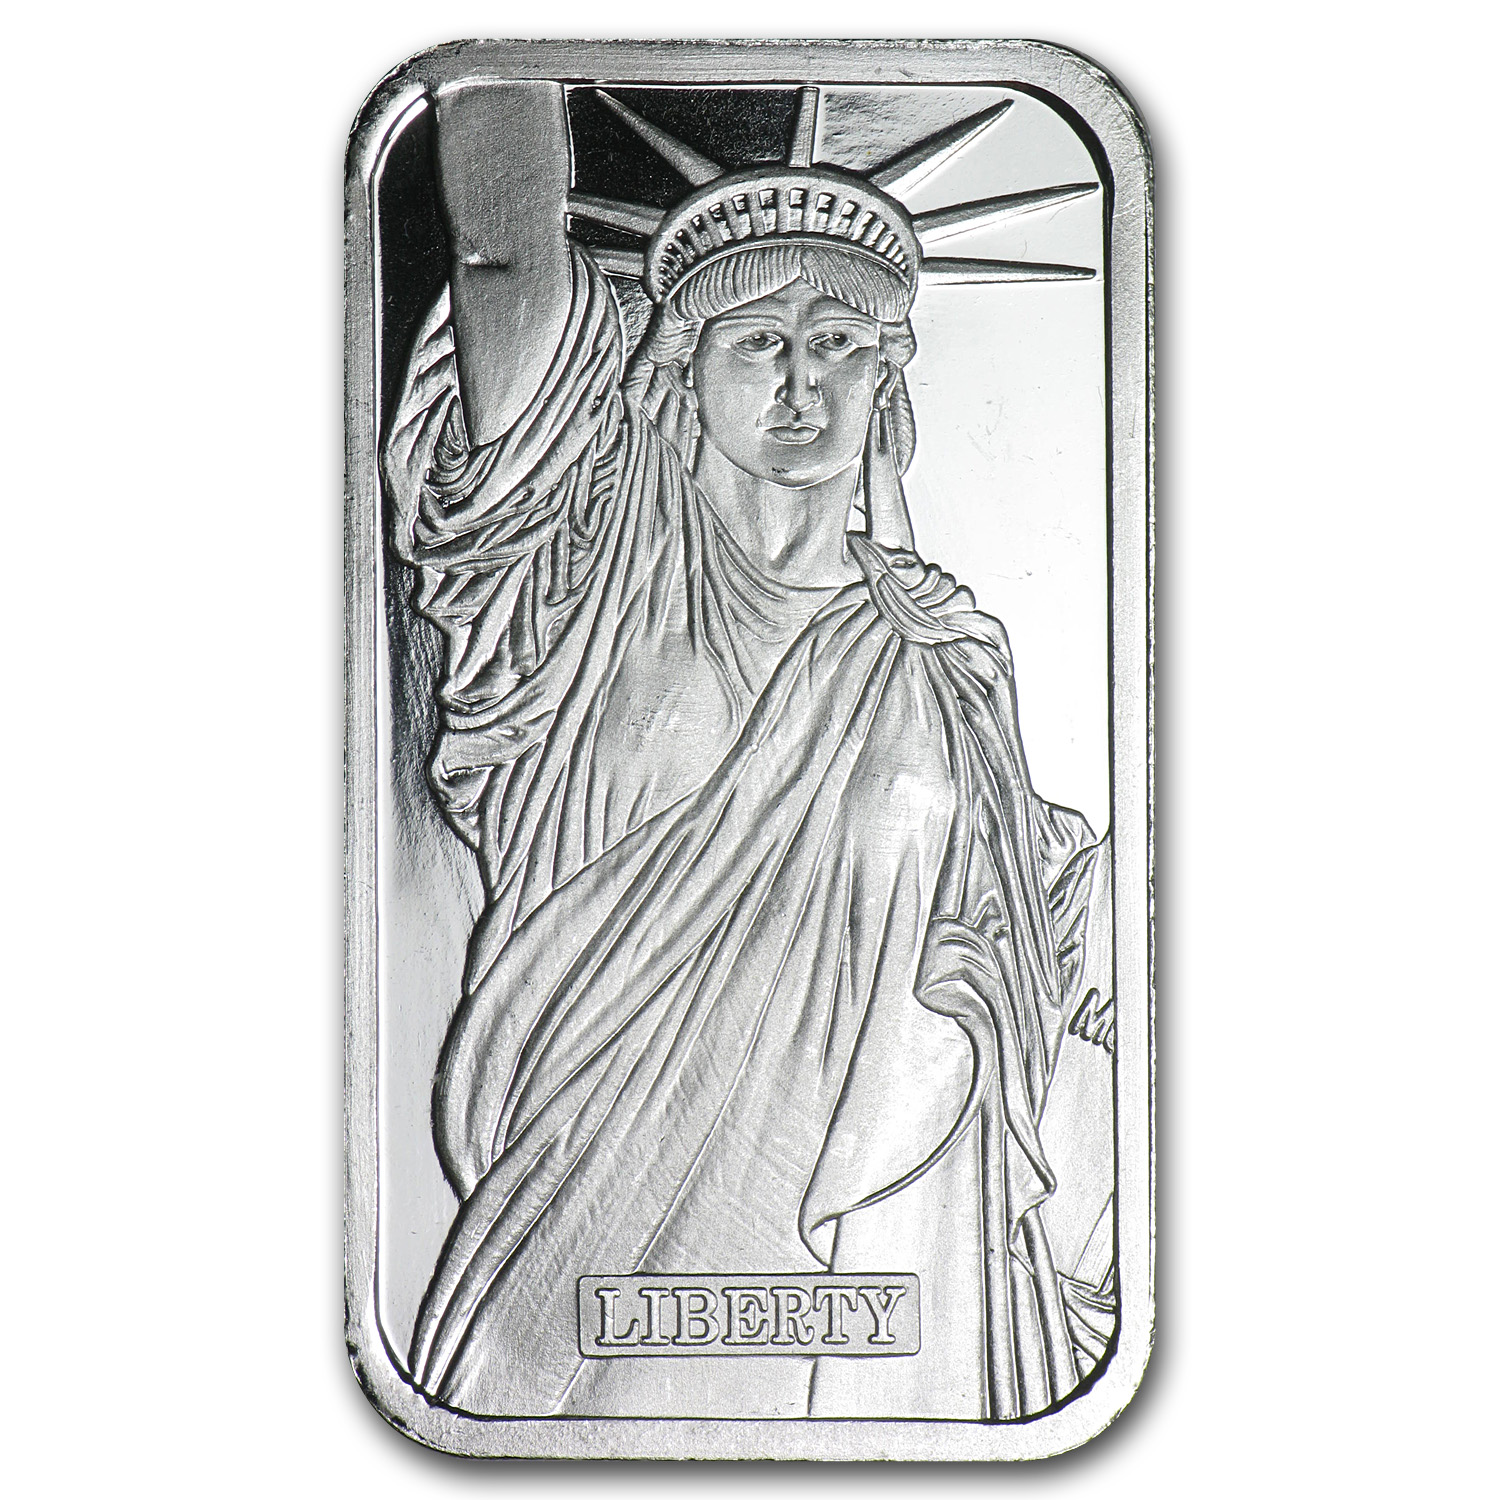 1 oz Silver Bars - Johnson Matthey (Statue of Liberty/MTB)